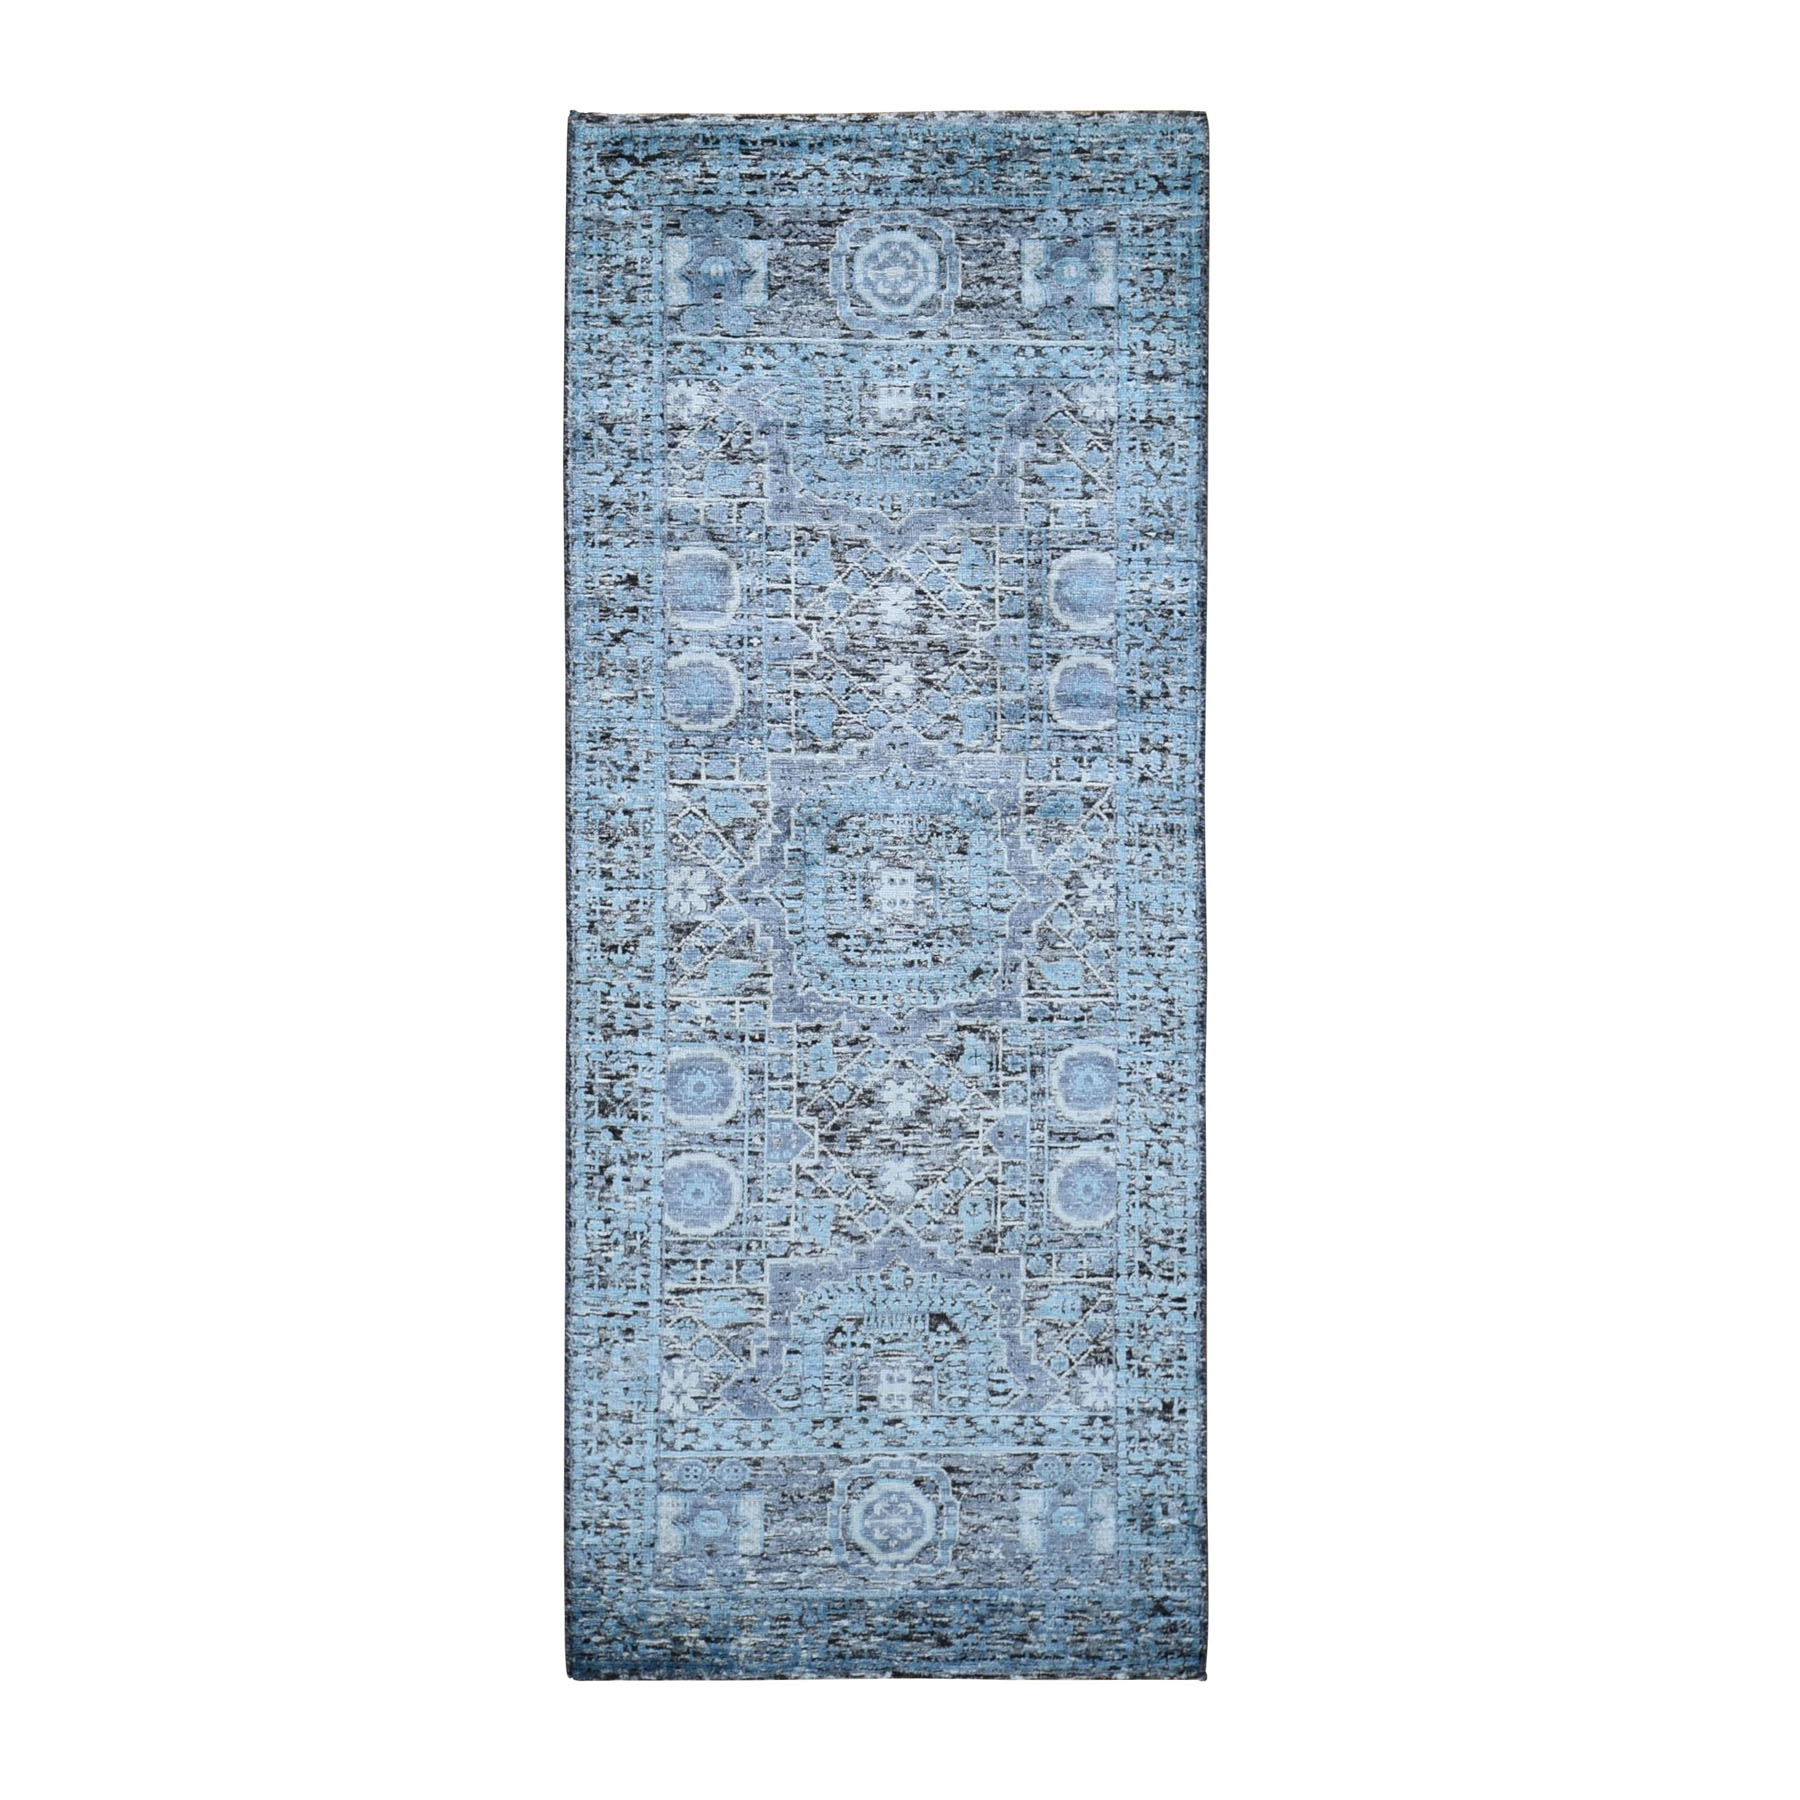 Intricate Collection Hand Knotted Black Rug No: 0198140